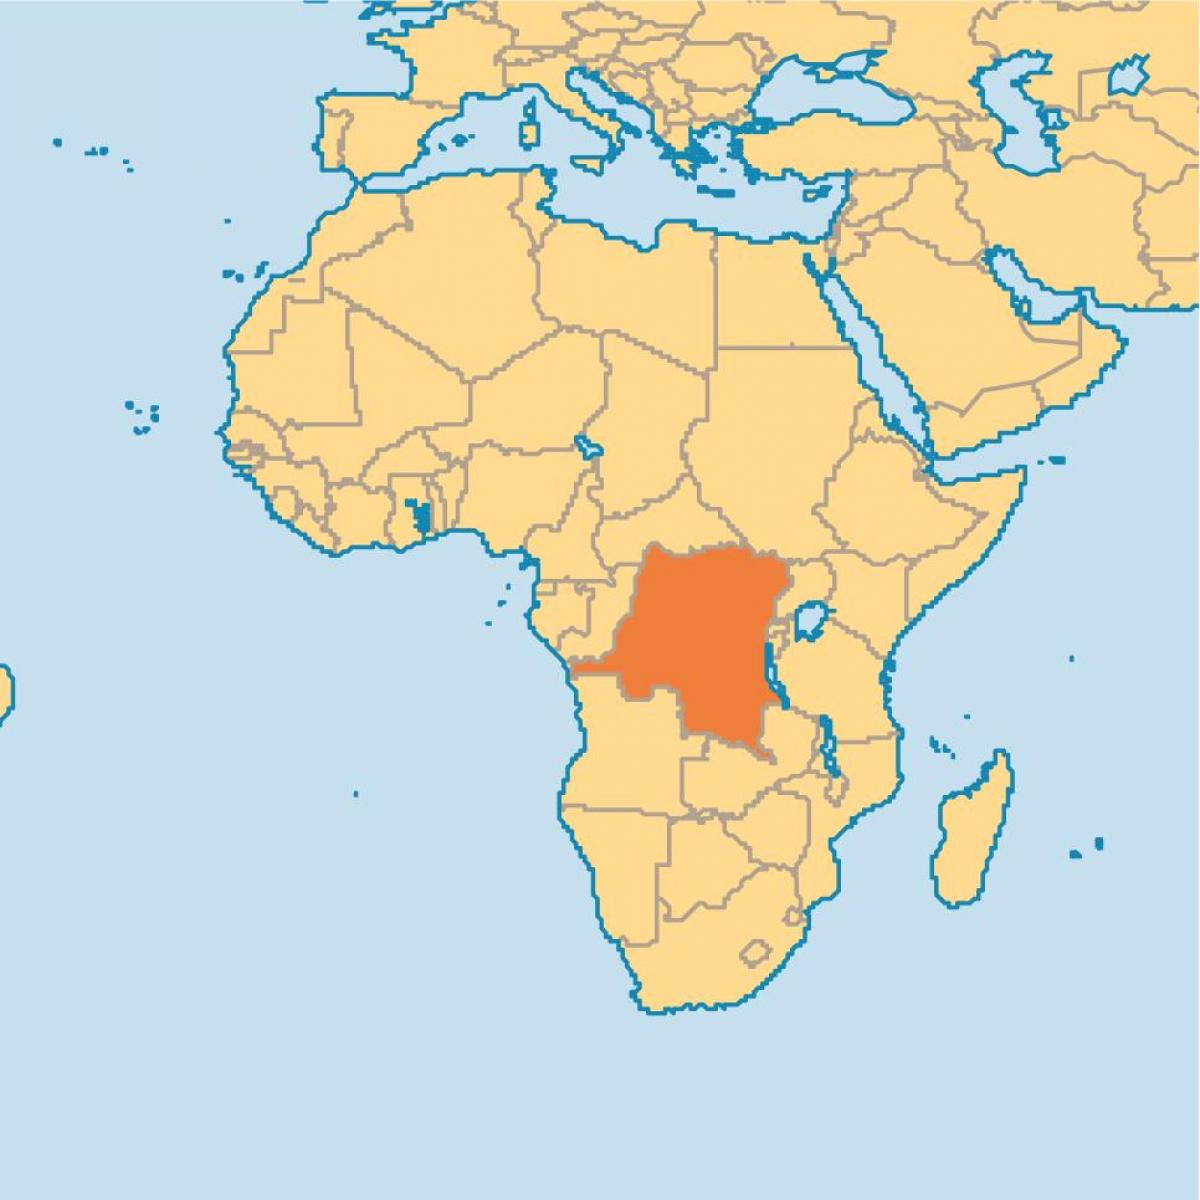 where is zaire on the map of africa Zaire On World Map Map Of Zaire On World Middle Africa Africa where is zaire on the map of africa